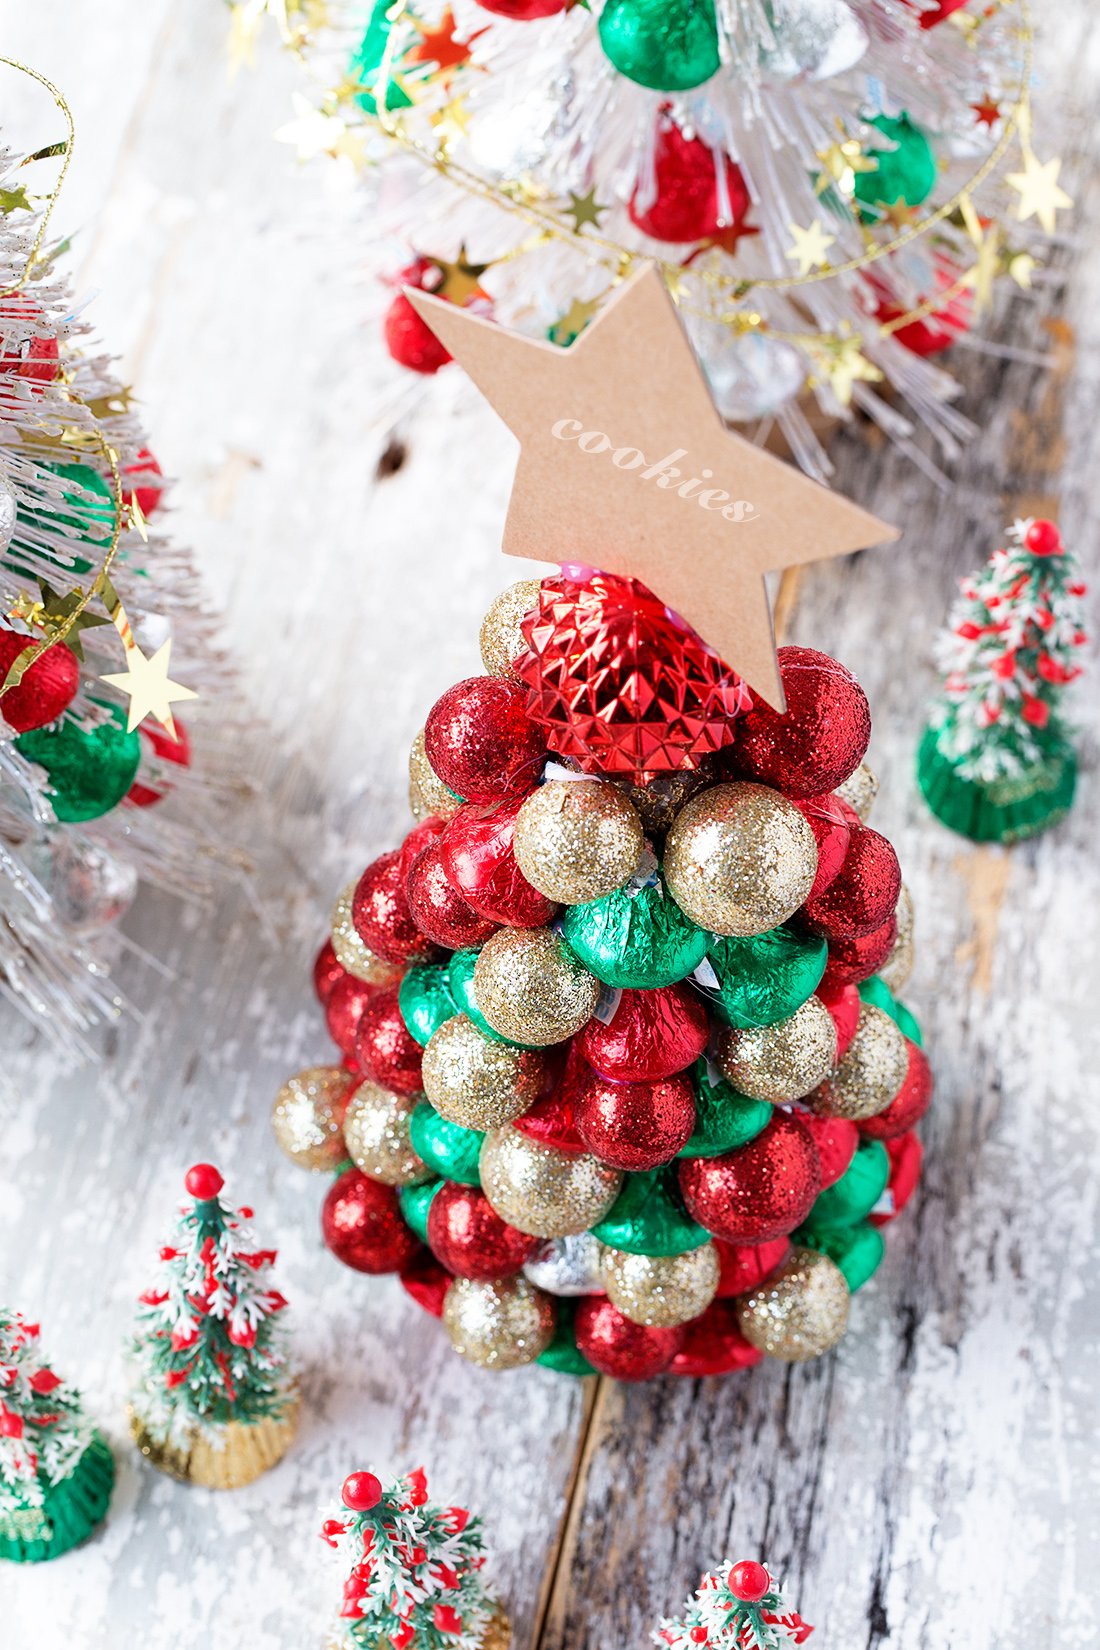 Edible Christmas Trees Wallpapers High Quality Download Free